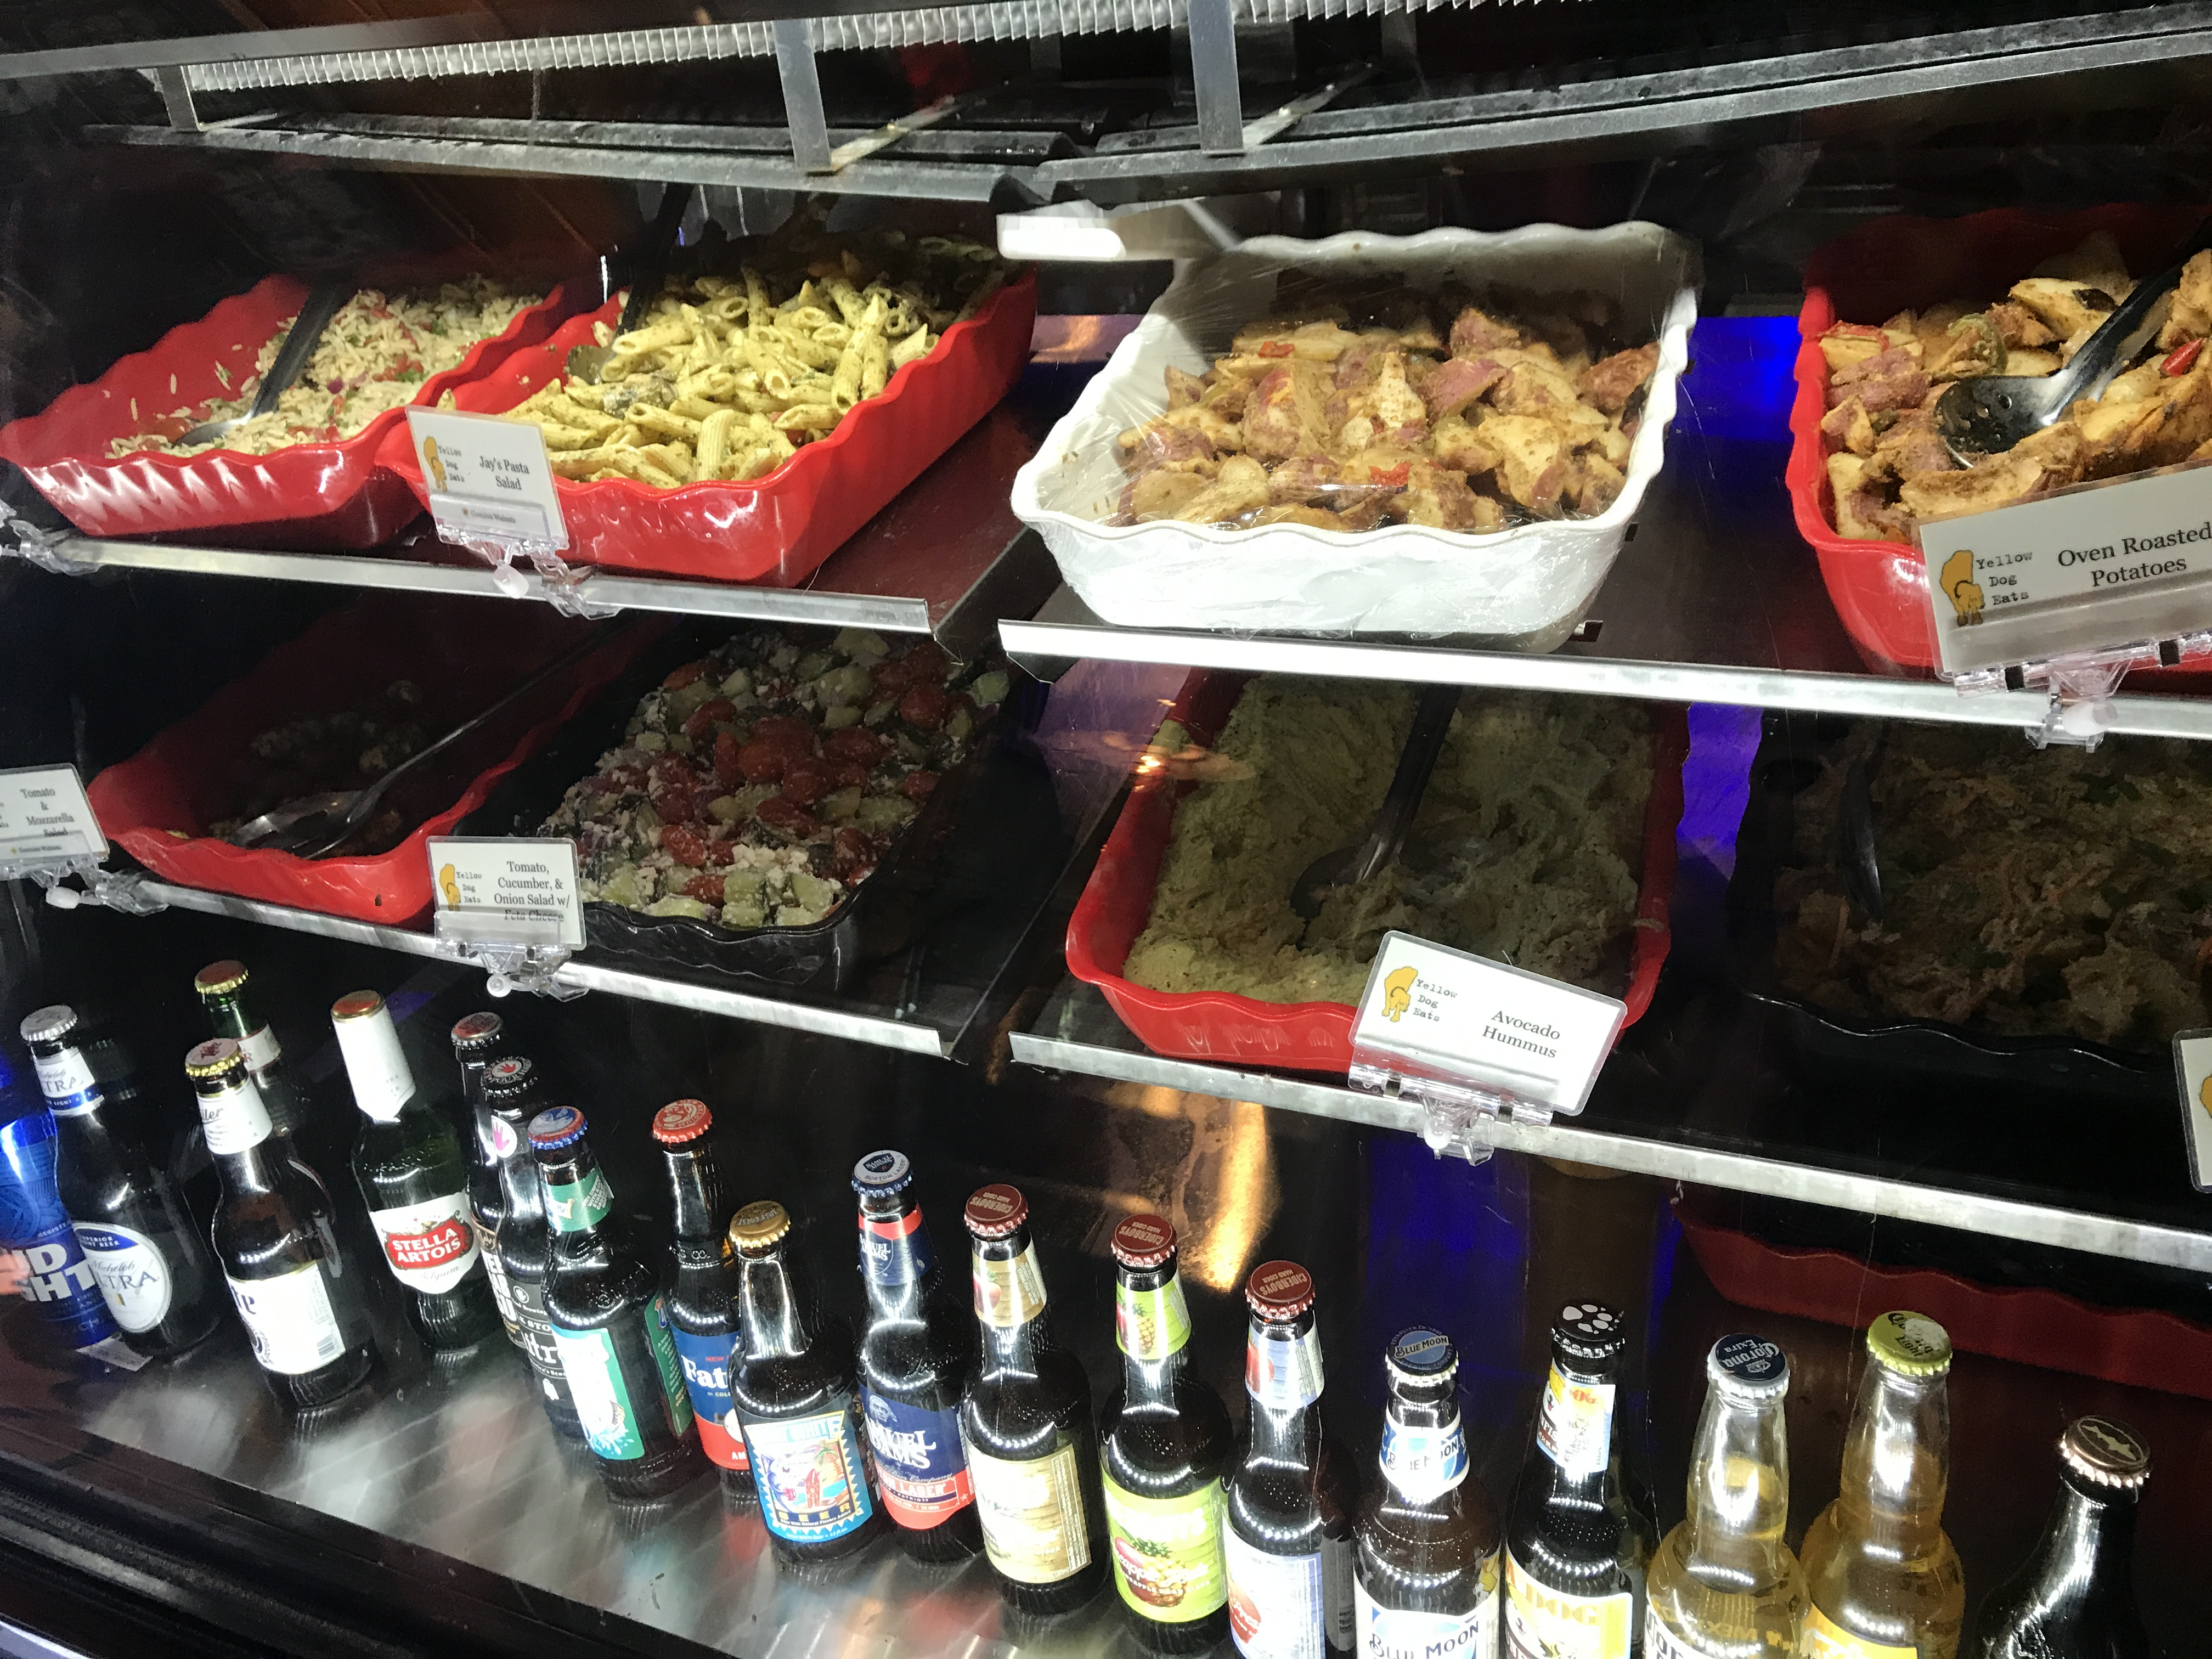 deli counter with sides and beer bottles